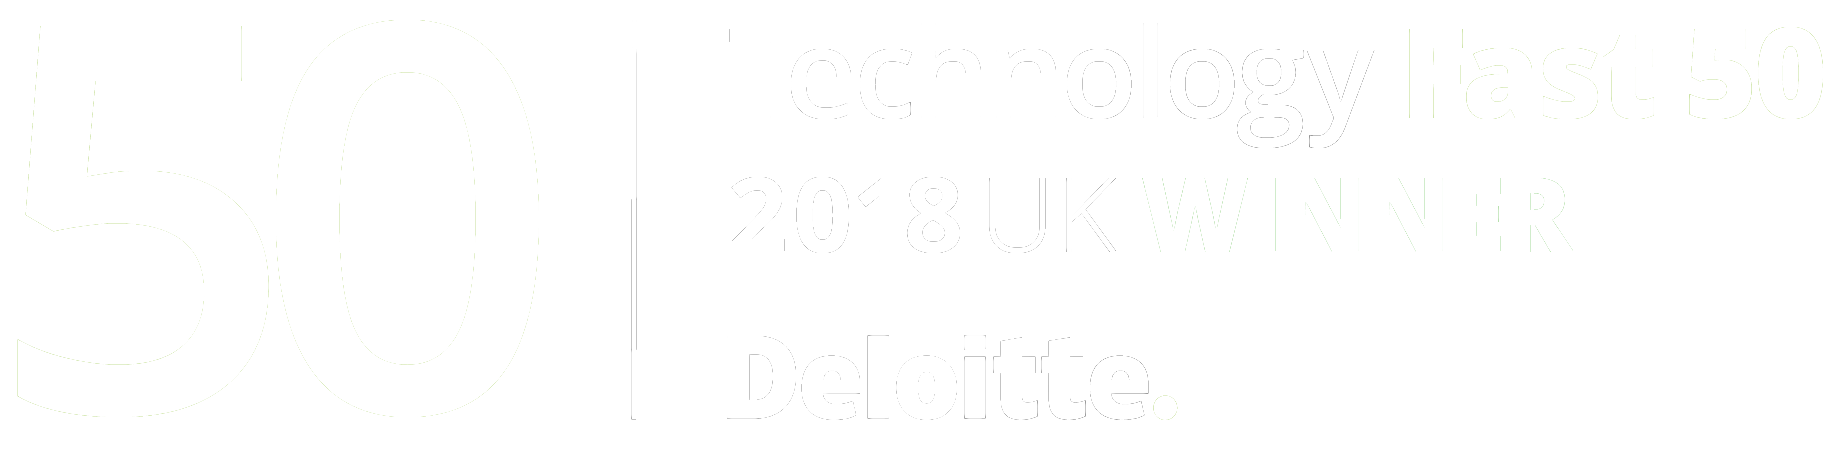 Technology Fast 50 2018 UK In Touch Networks